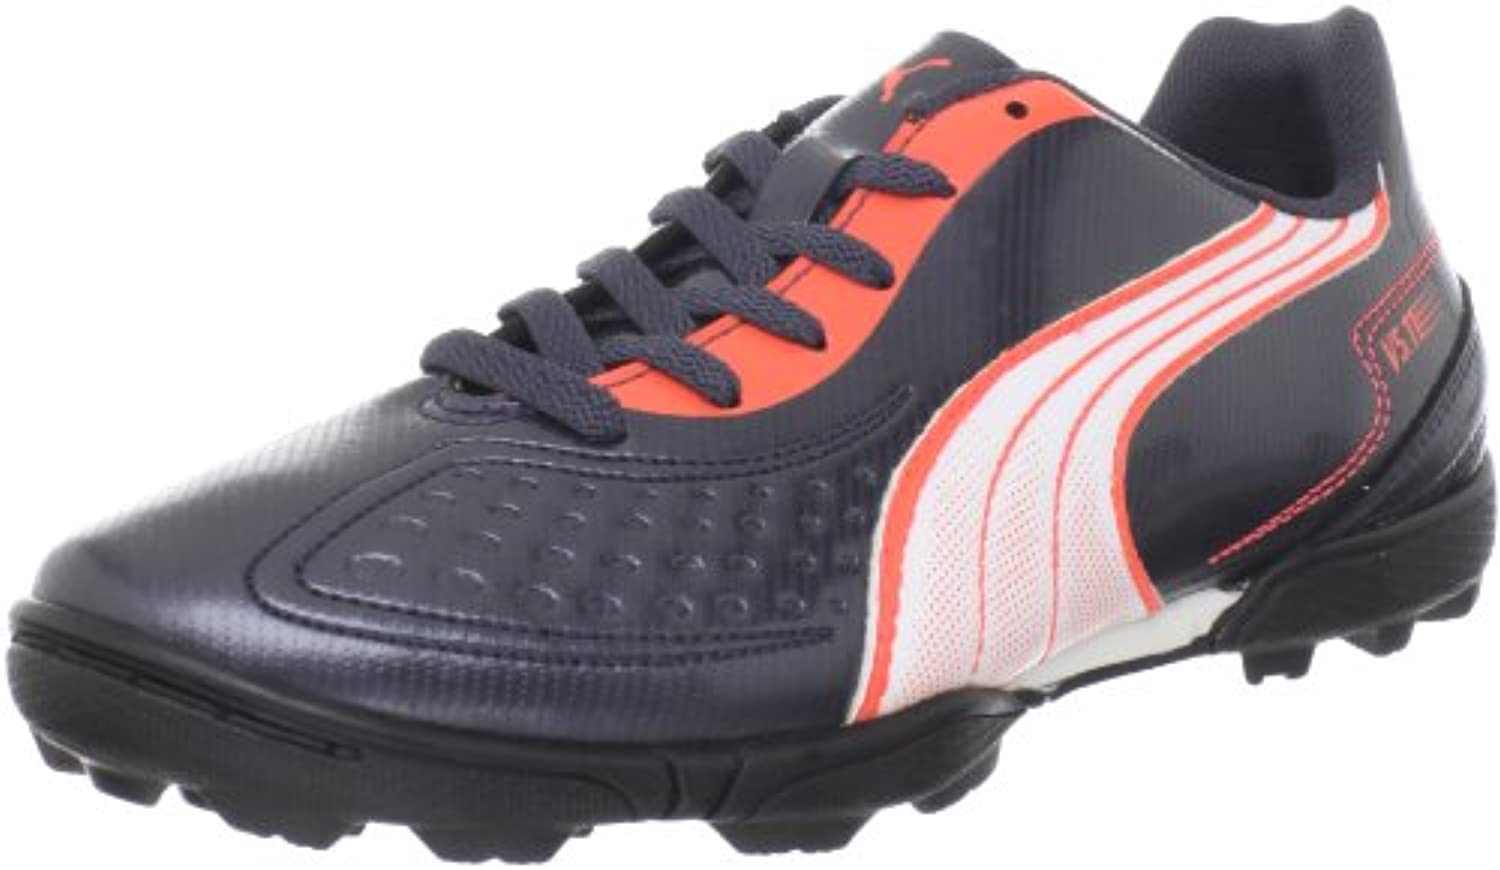 Puma V5.11 TT Jr Soccer Cleat Little Kid/Big Kid